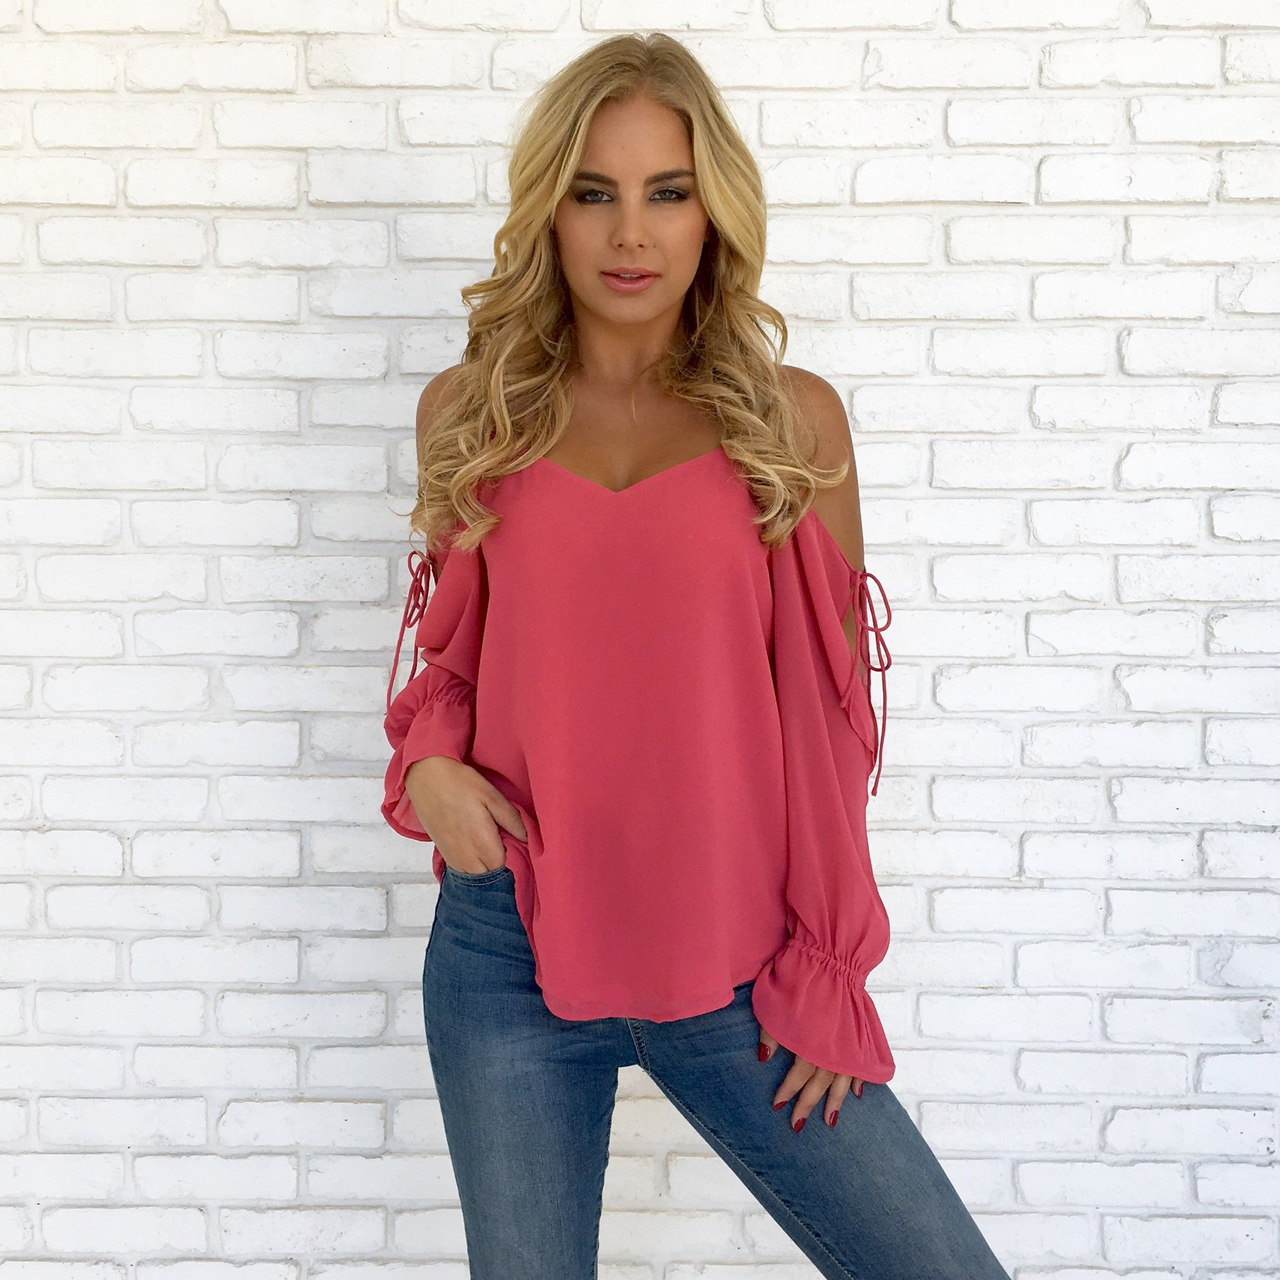 85fa85b930f 2019 Spring and Summer Women Sexy Deep V-Neck Shirt Casual Long Sleeve Top  Ladies Fashion Solid Color Loose T-Shirts Off the Shoulder Chiffon Blouse  Women ...